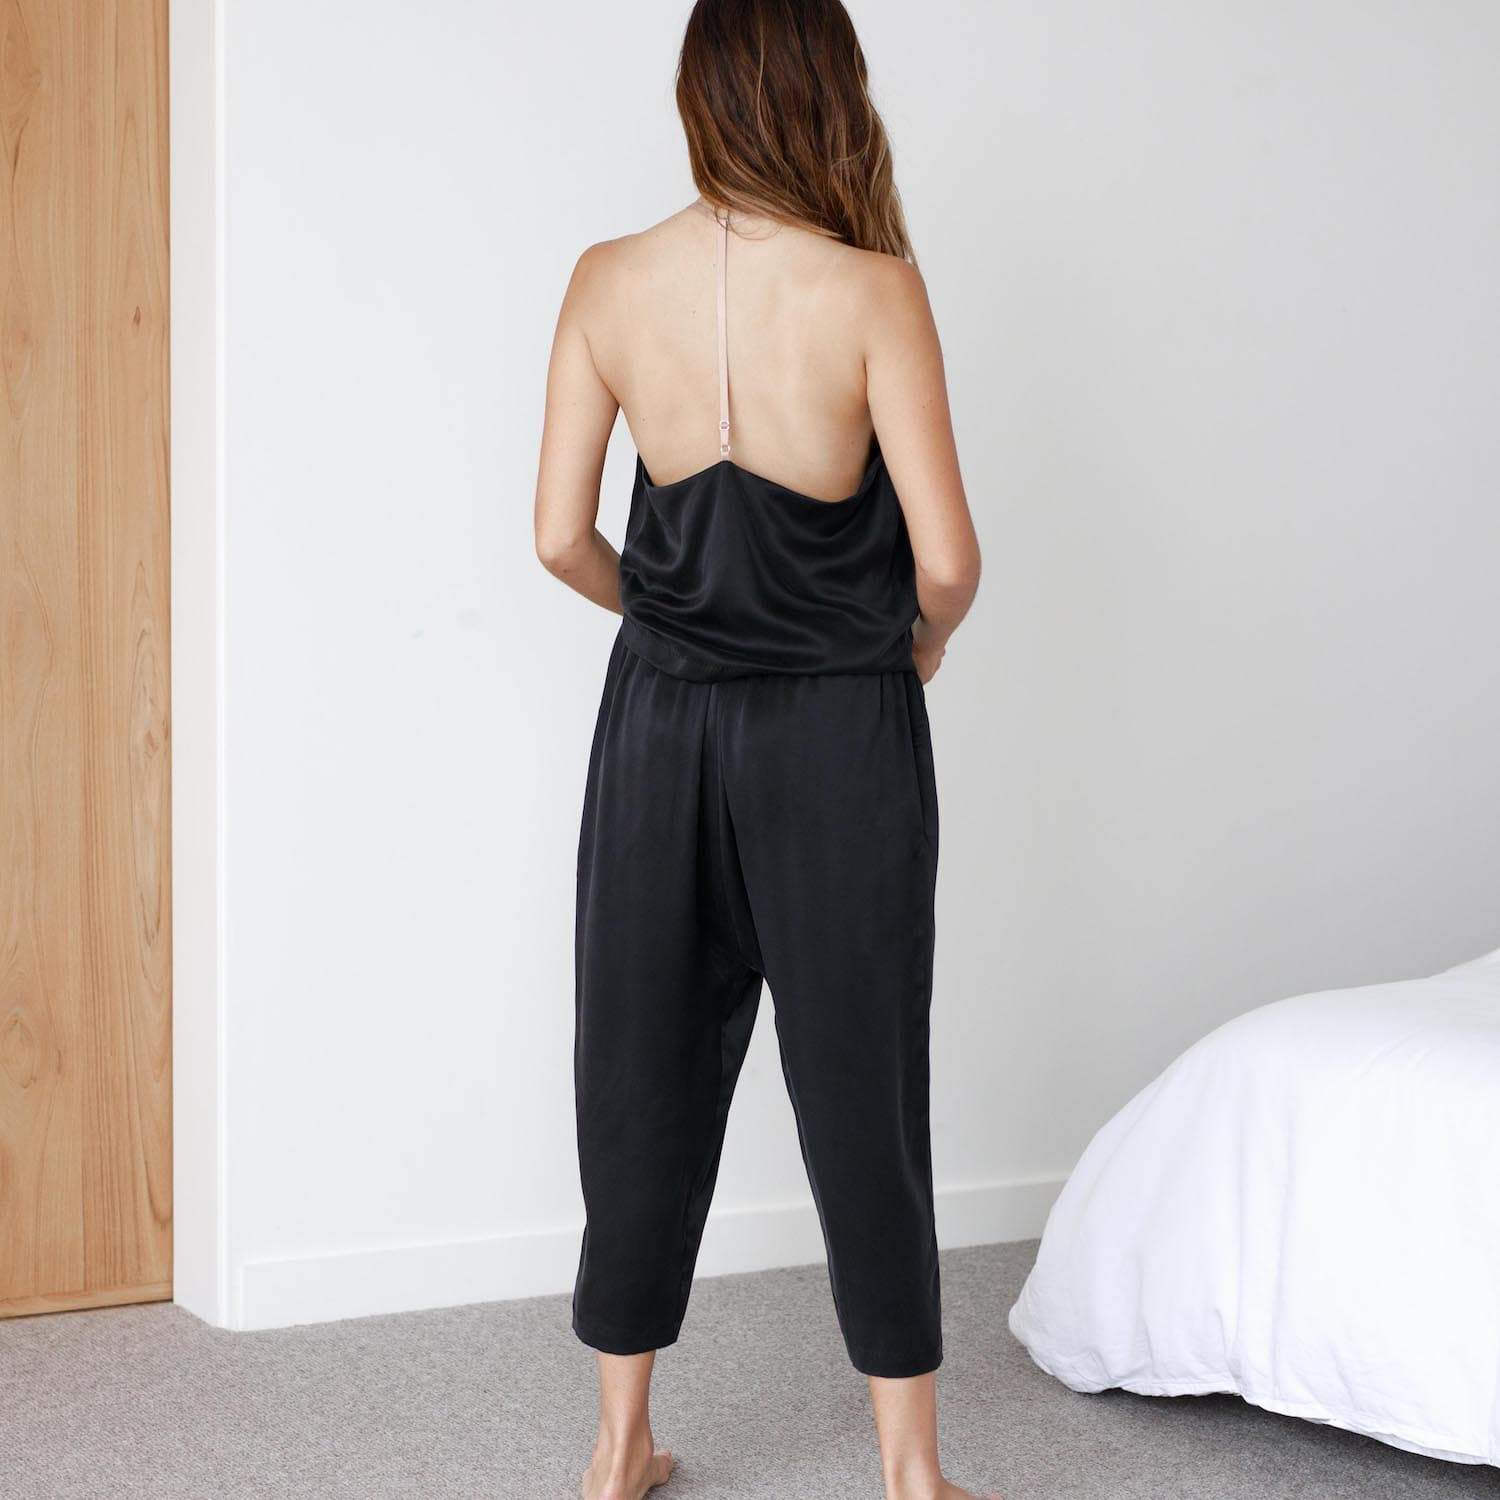 Lunya Sleepwear Washable Silk Cami Harem Pant Set- #Black/Bare/Otium Tan